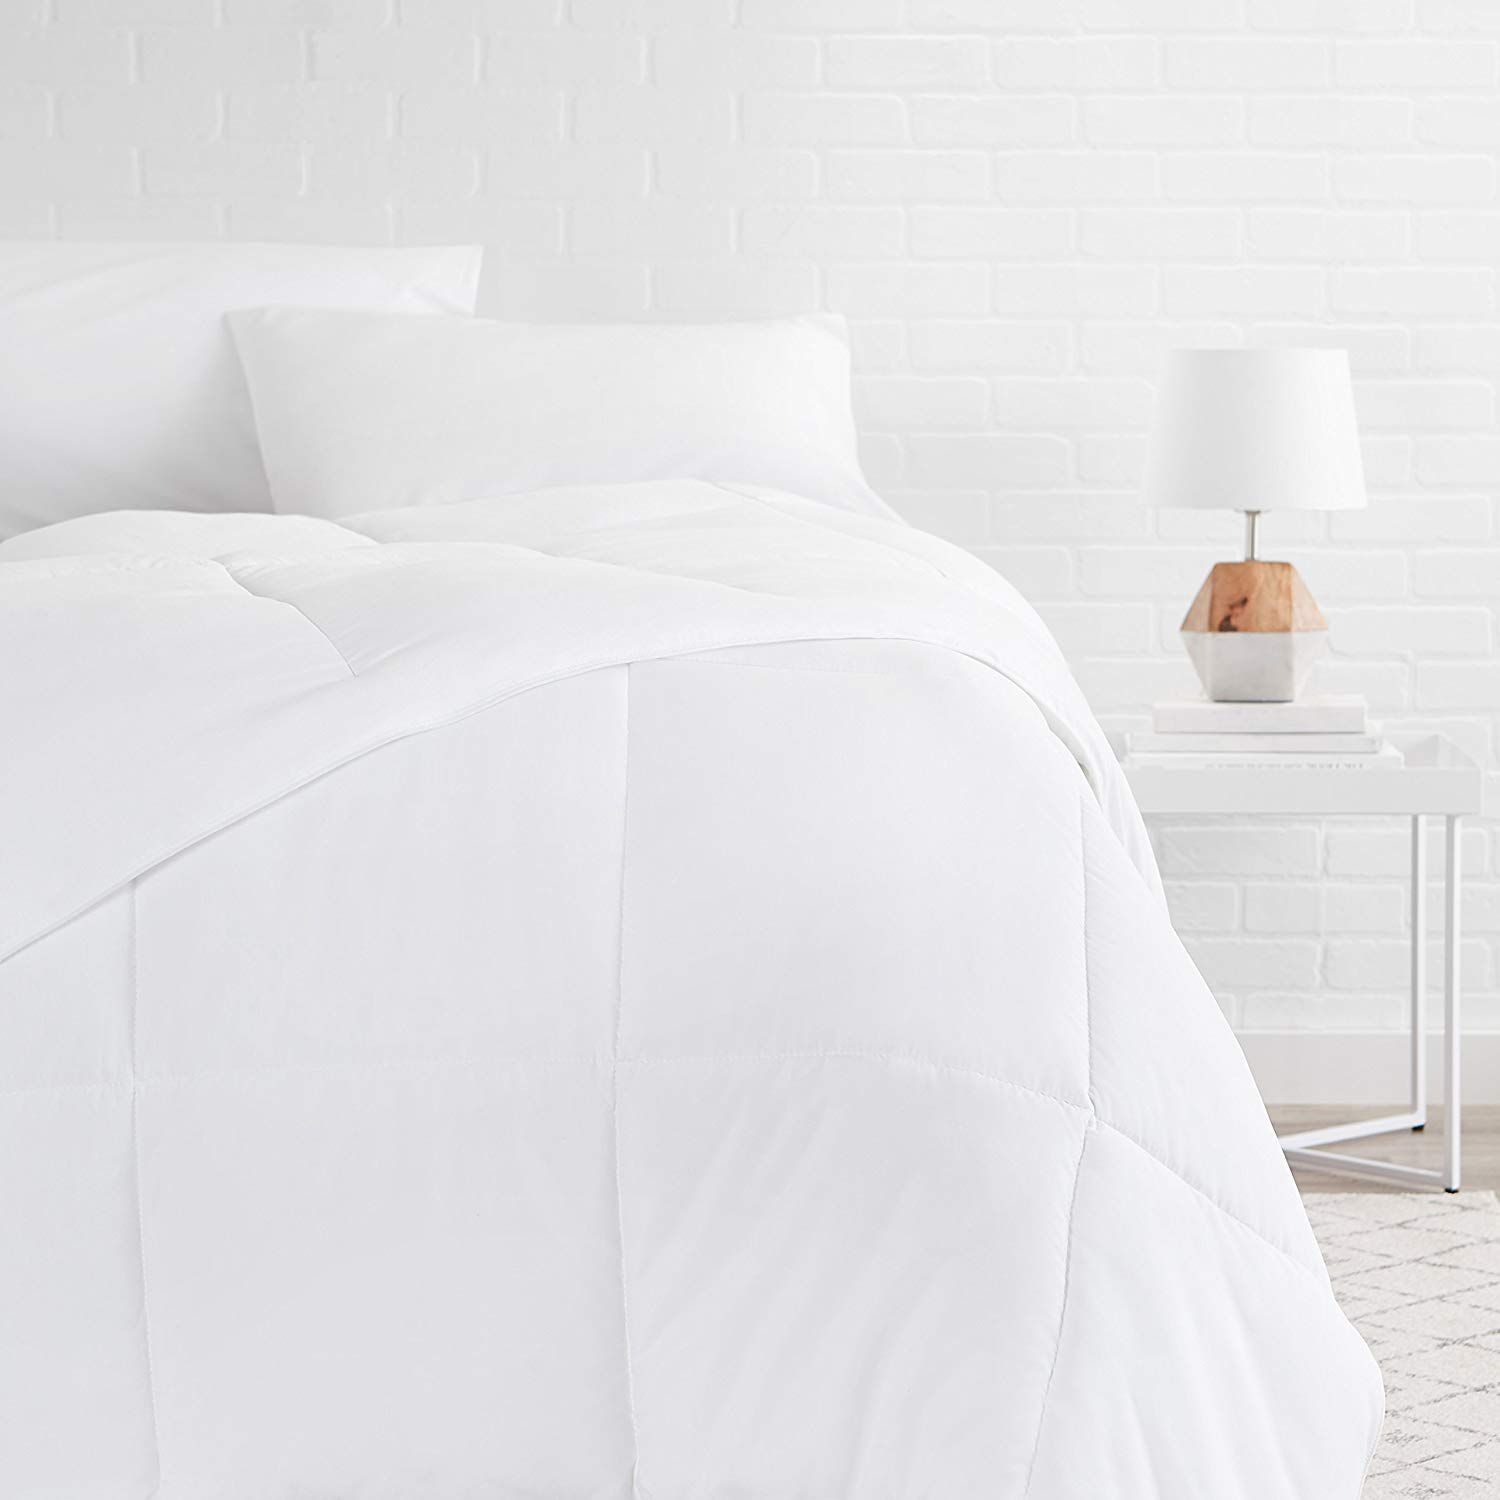 White down comforter on bed